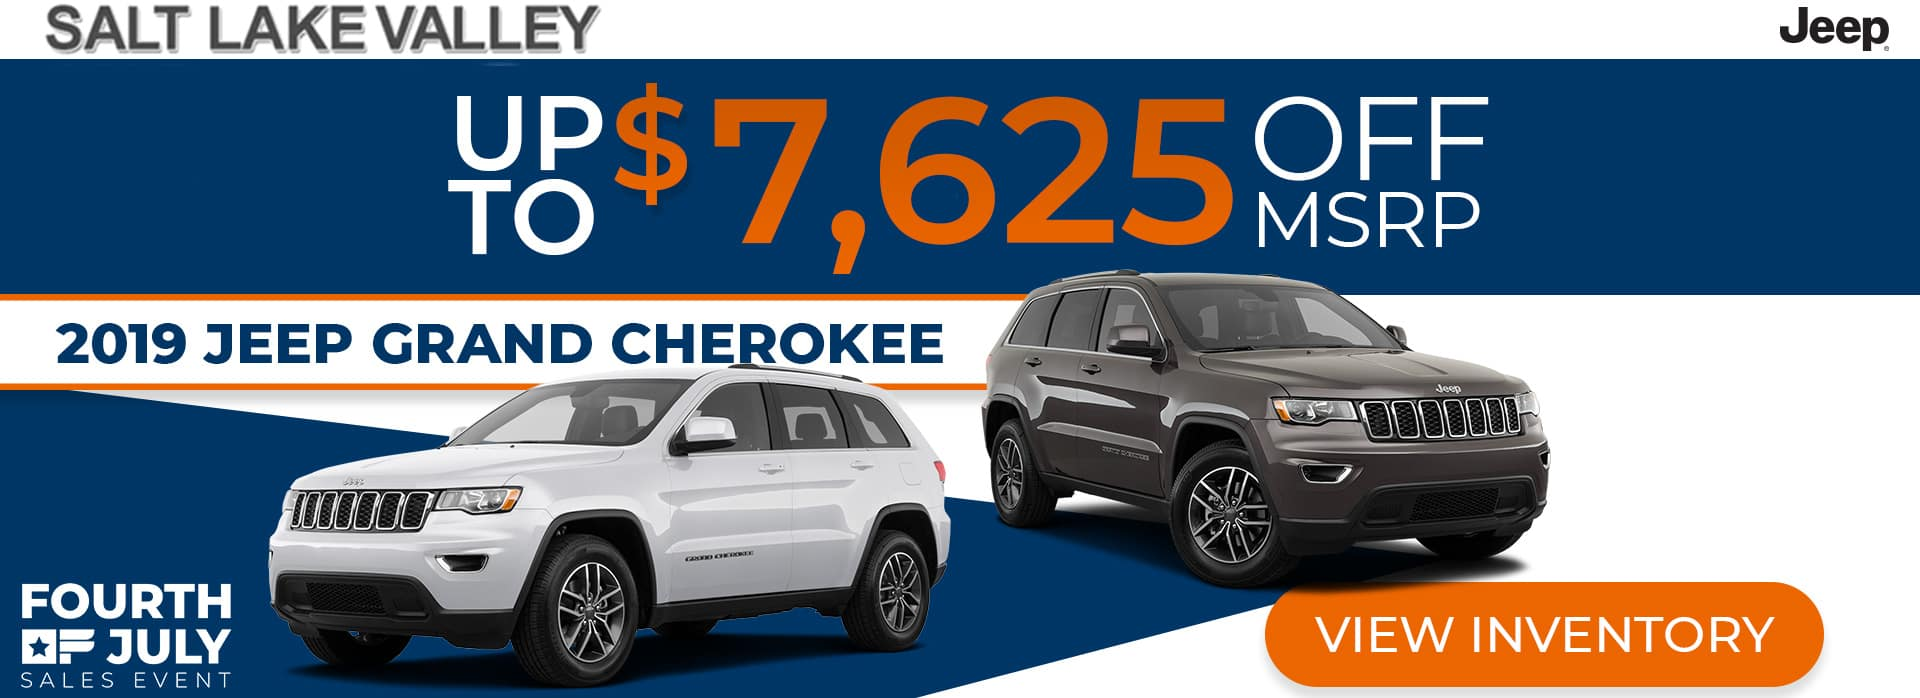 4th of July Sales Event for Grand Cherokee